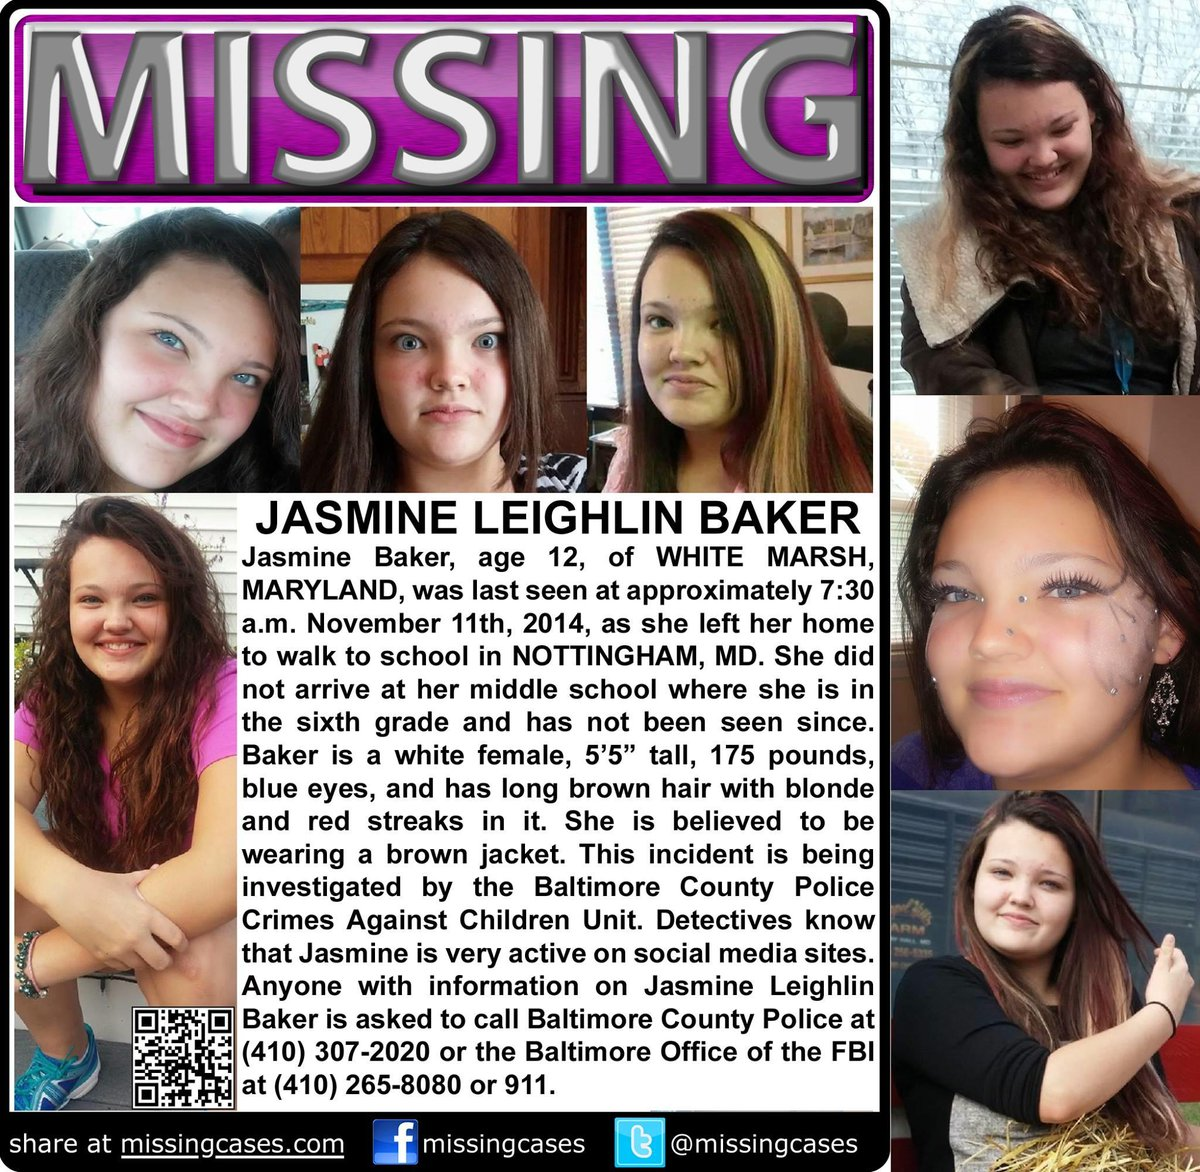 Missing girl- Baltimore area http://t.co/aNRE5hBwrx